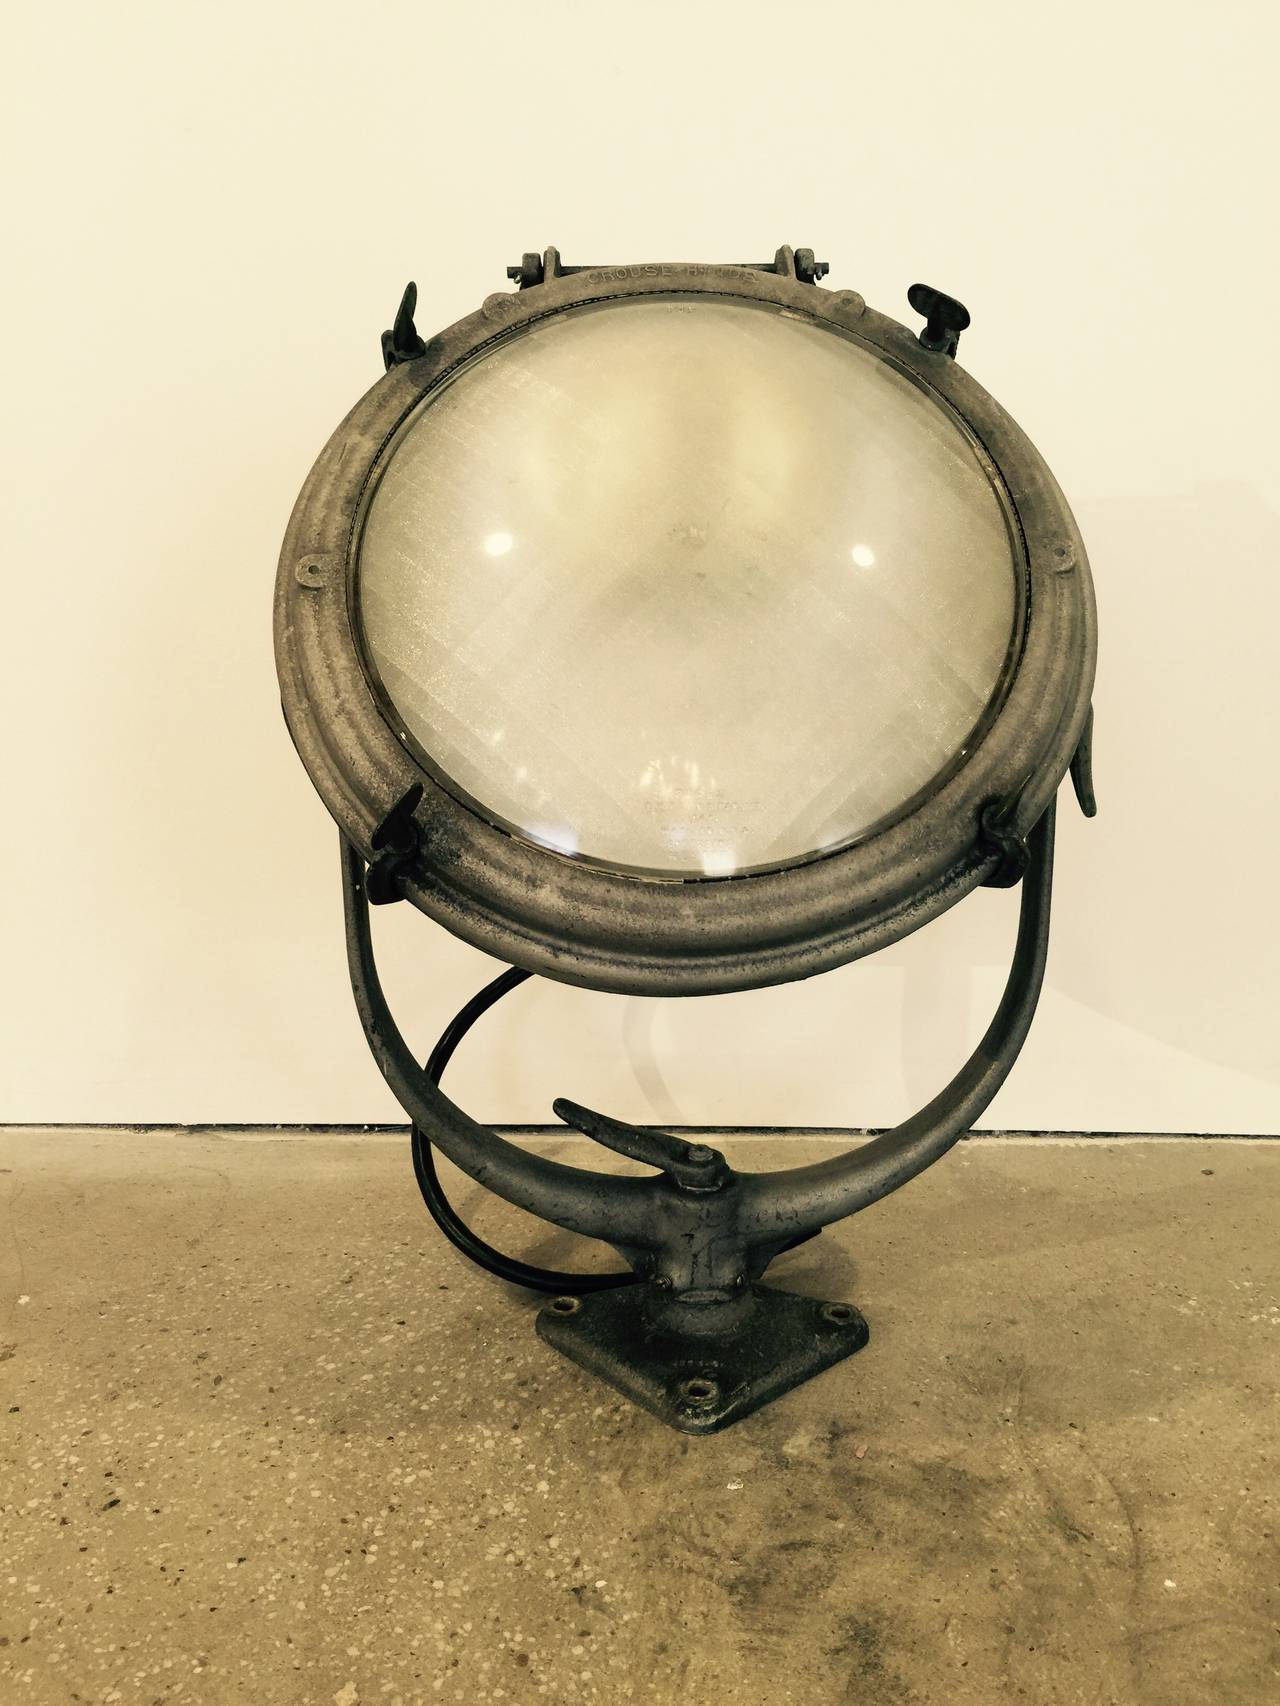 Vintage nautical or industrial ship spotlight / search light / lantern by Crouse Hinds. USA, circa 1930.  For display purposes only; not tested for use.    Please see our other listings or contact us for other styles of sizes of similar spot